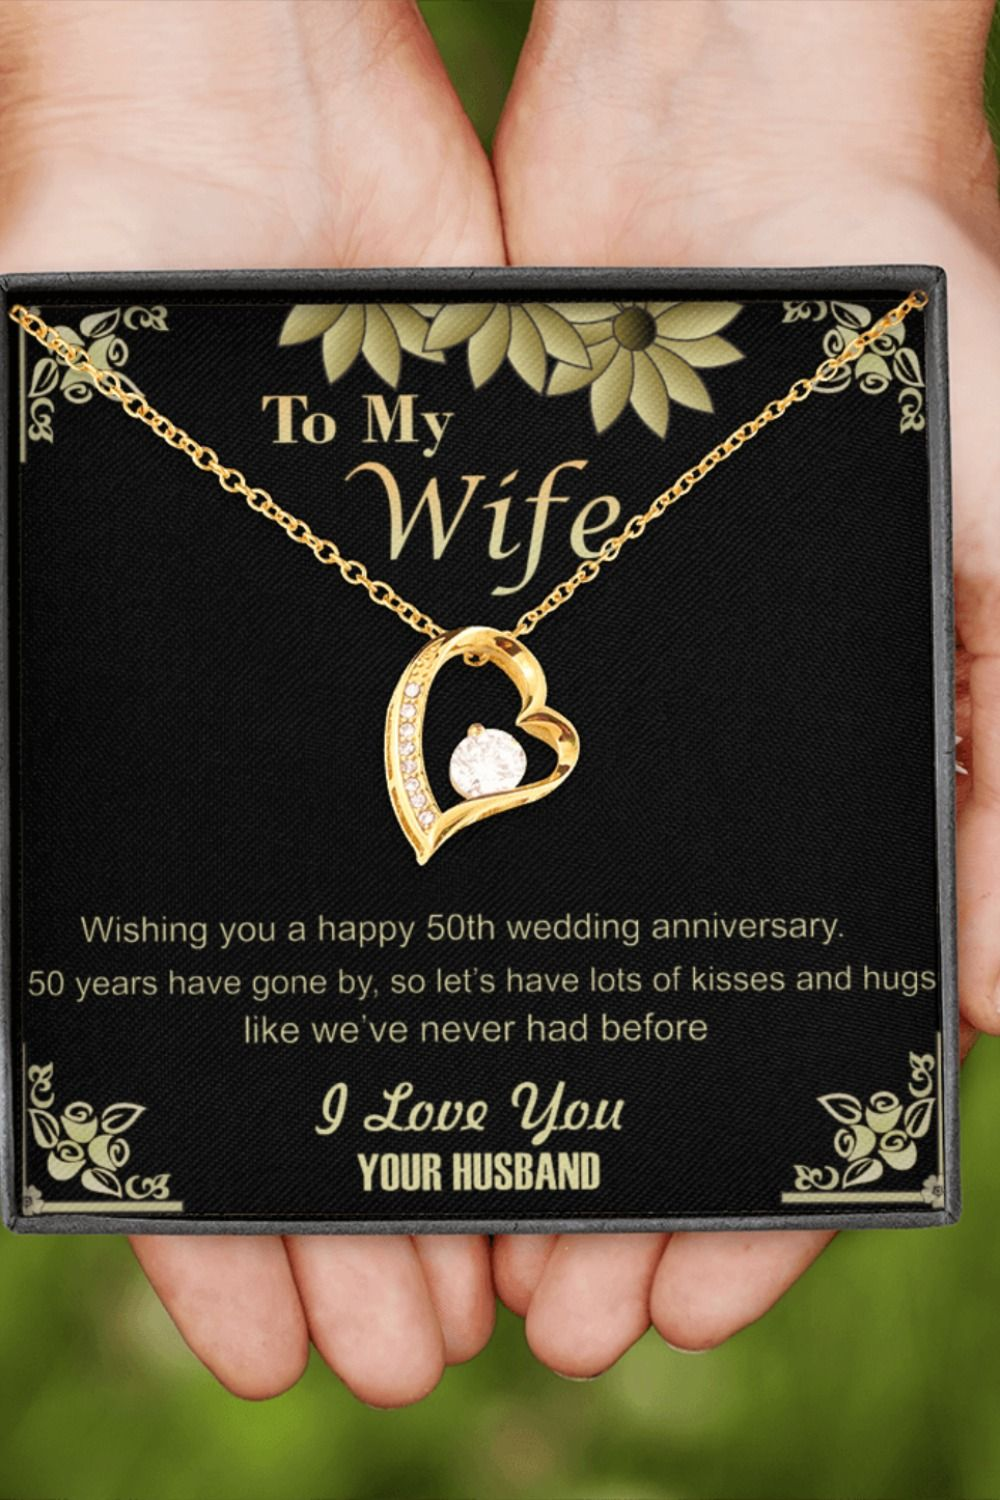 50th Golden Wedding Anniversary Pendant Necklace Gift For Wife Her Gold Present Jewelry Ideas In 2020 50 Golden Wedding Anniversary 50th Wedding Anniversary Wishes Golden Wedding Anniversary